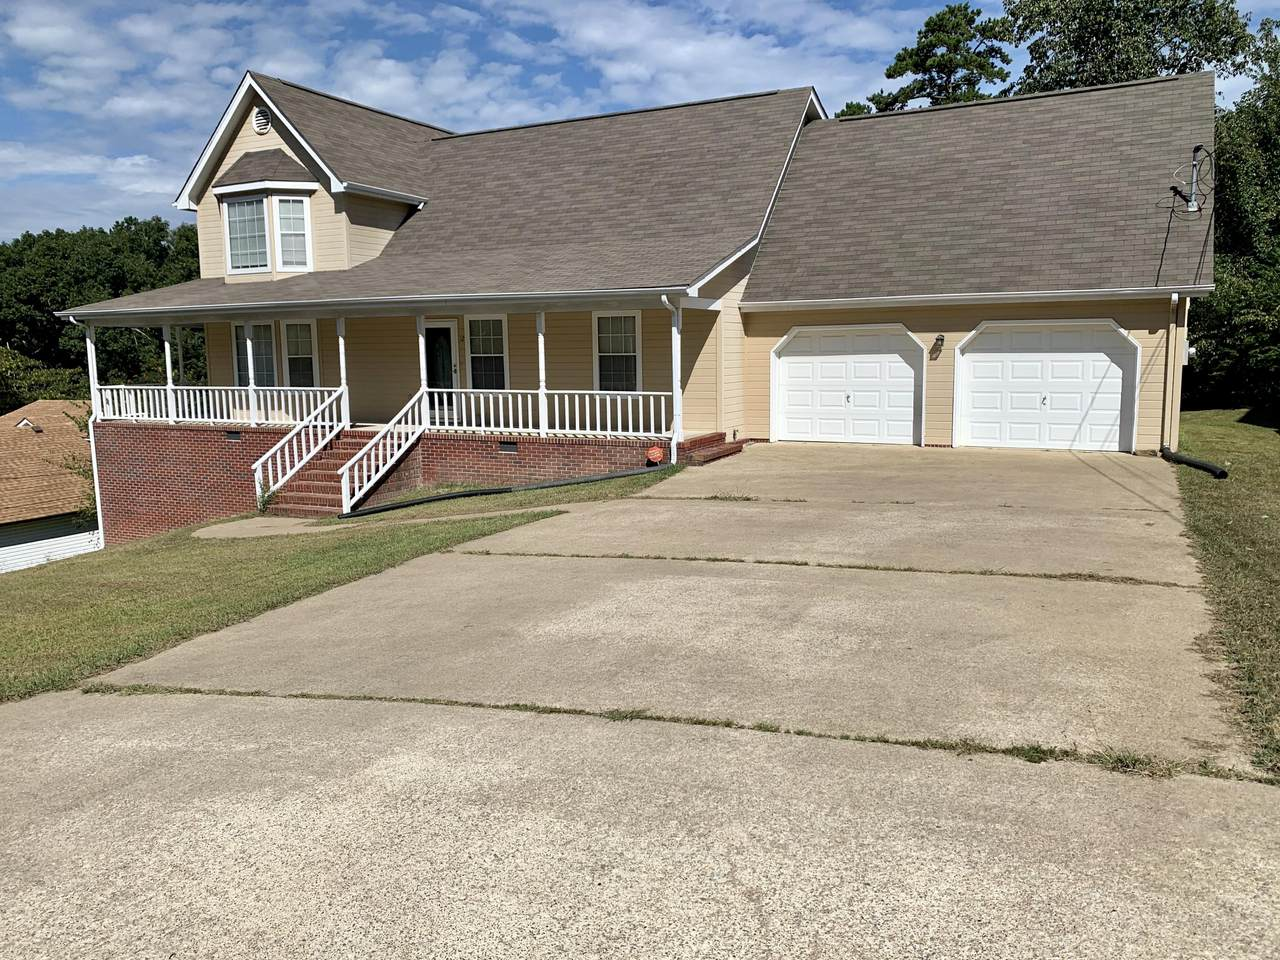 866 Lee Dr - Photo 1